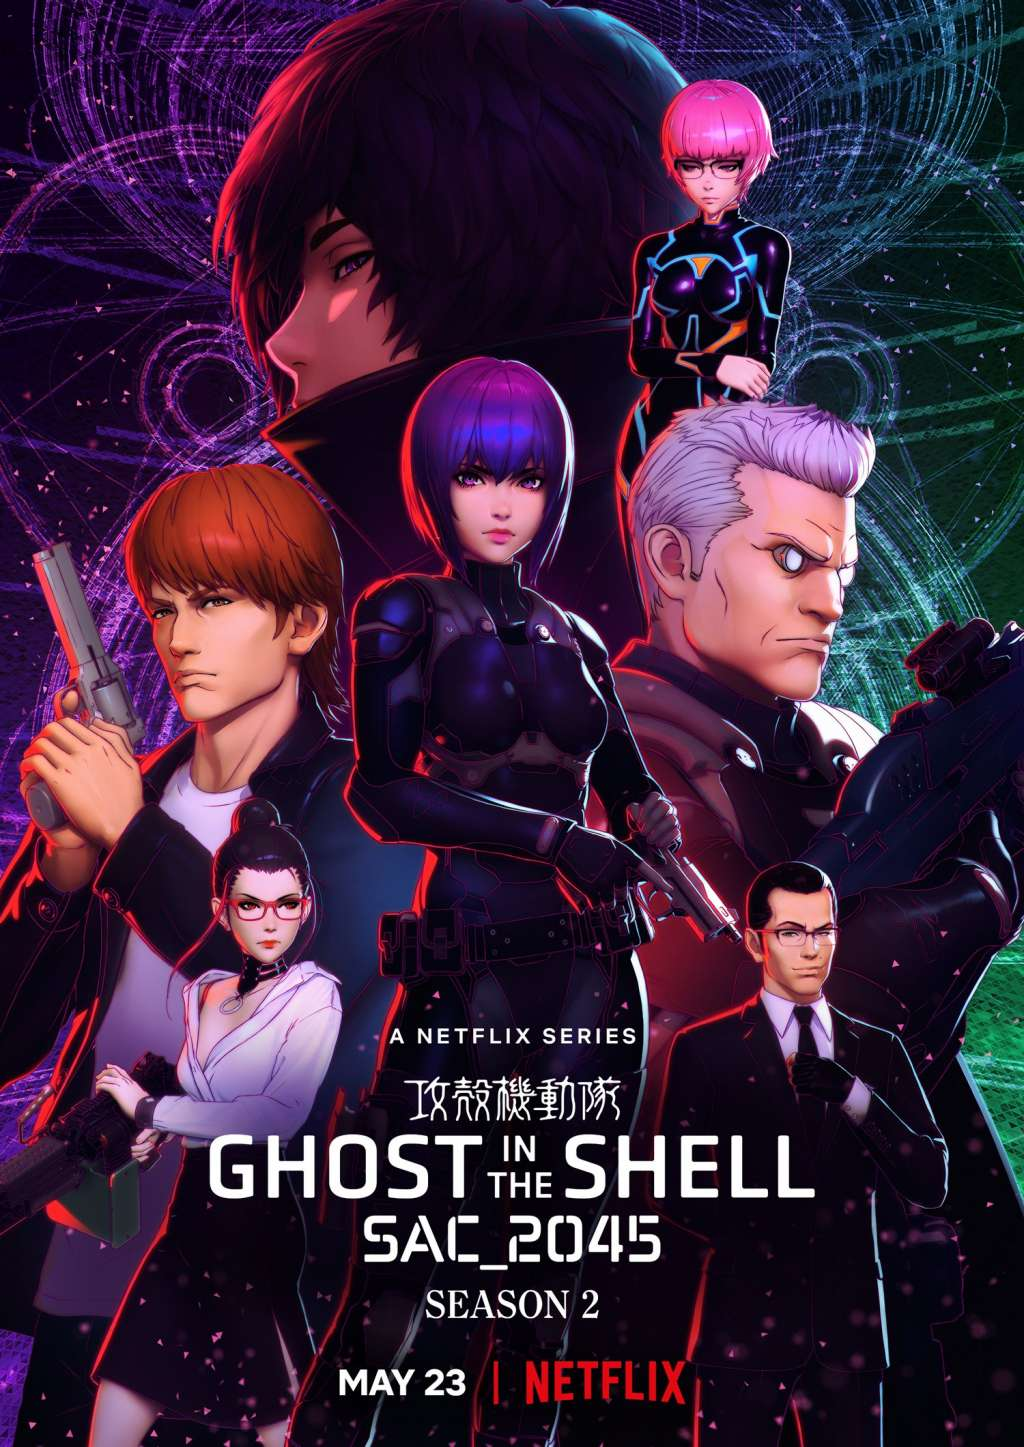 Ghost in the Shell SAC_2045 kapak